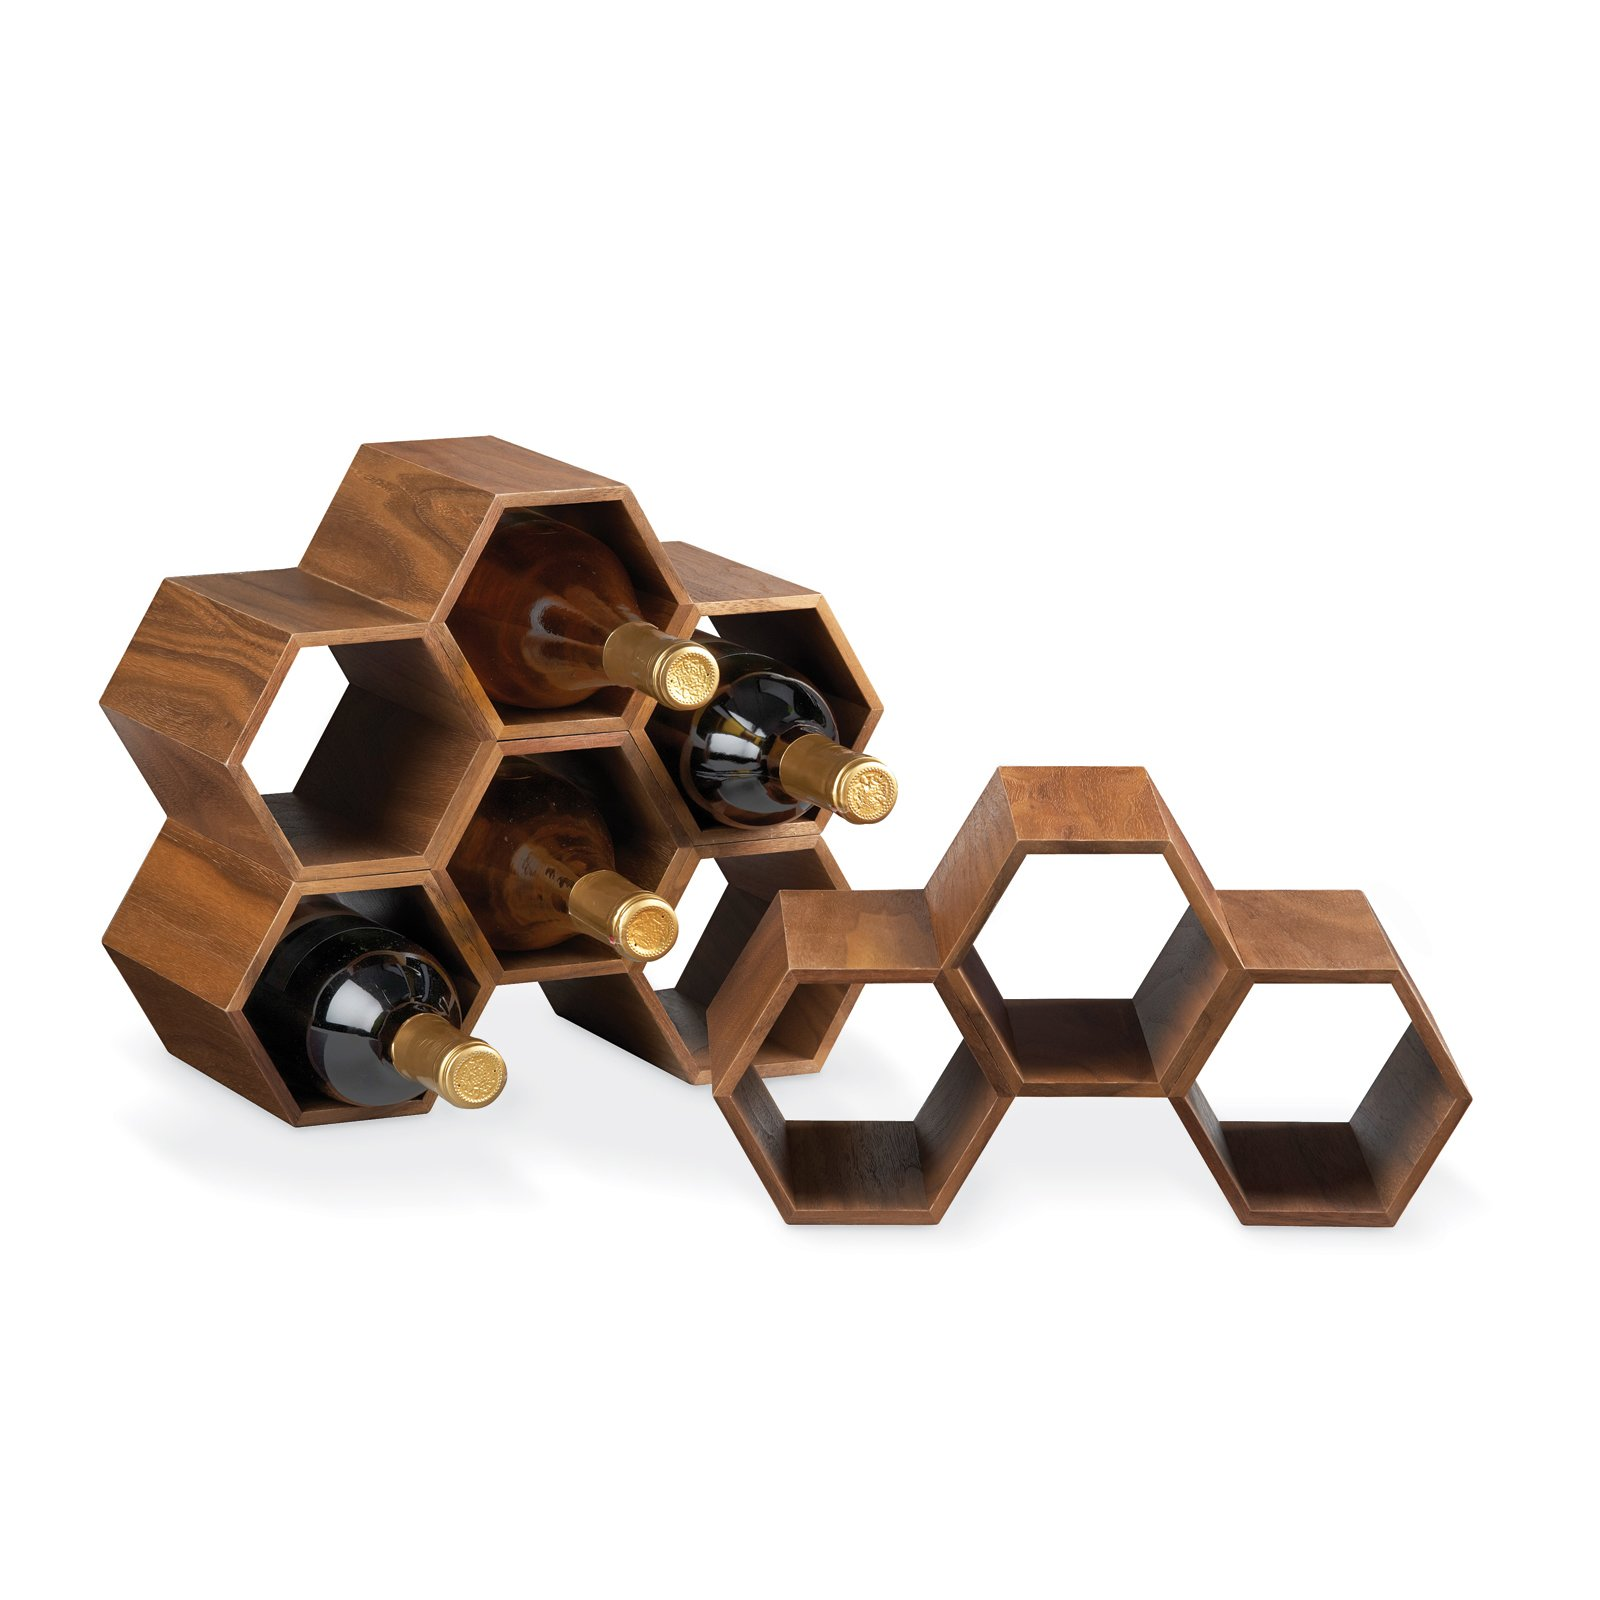 Hexa Stacking Wine Rack  This modular counter top wine storage unit is made of walnut veneer and, like a beehive, can pack a multitude of storage nooks into a small space.  Essentials for the Modern Bar by Jacqueline Leahy